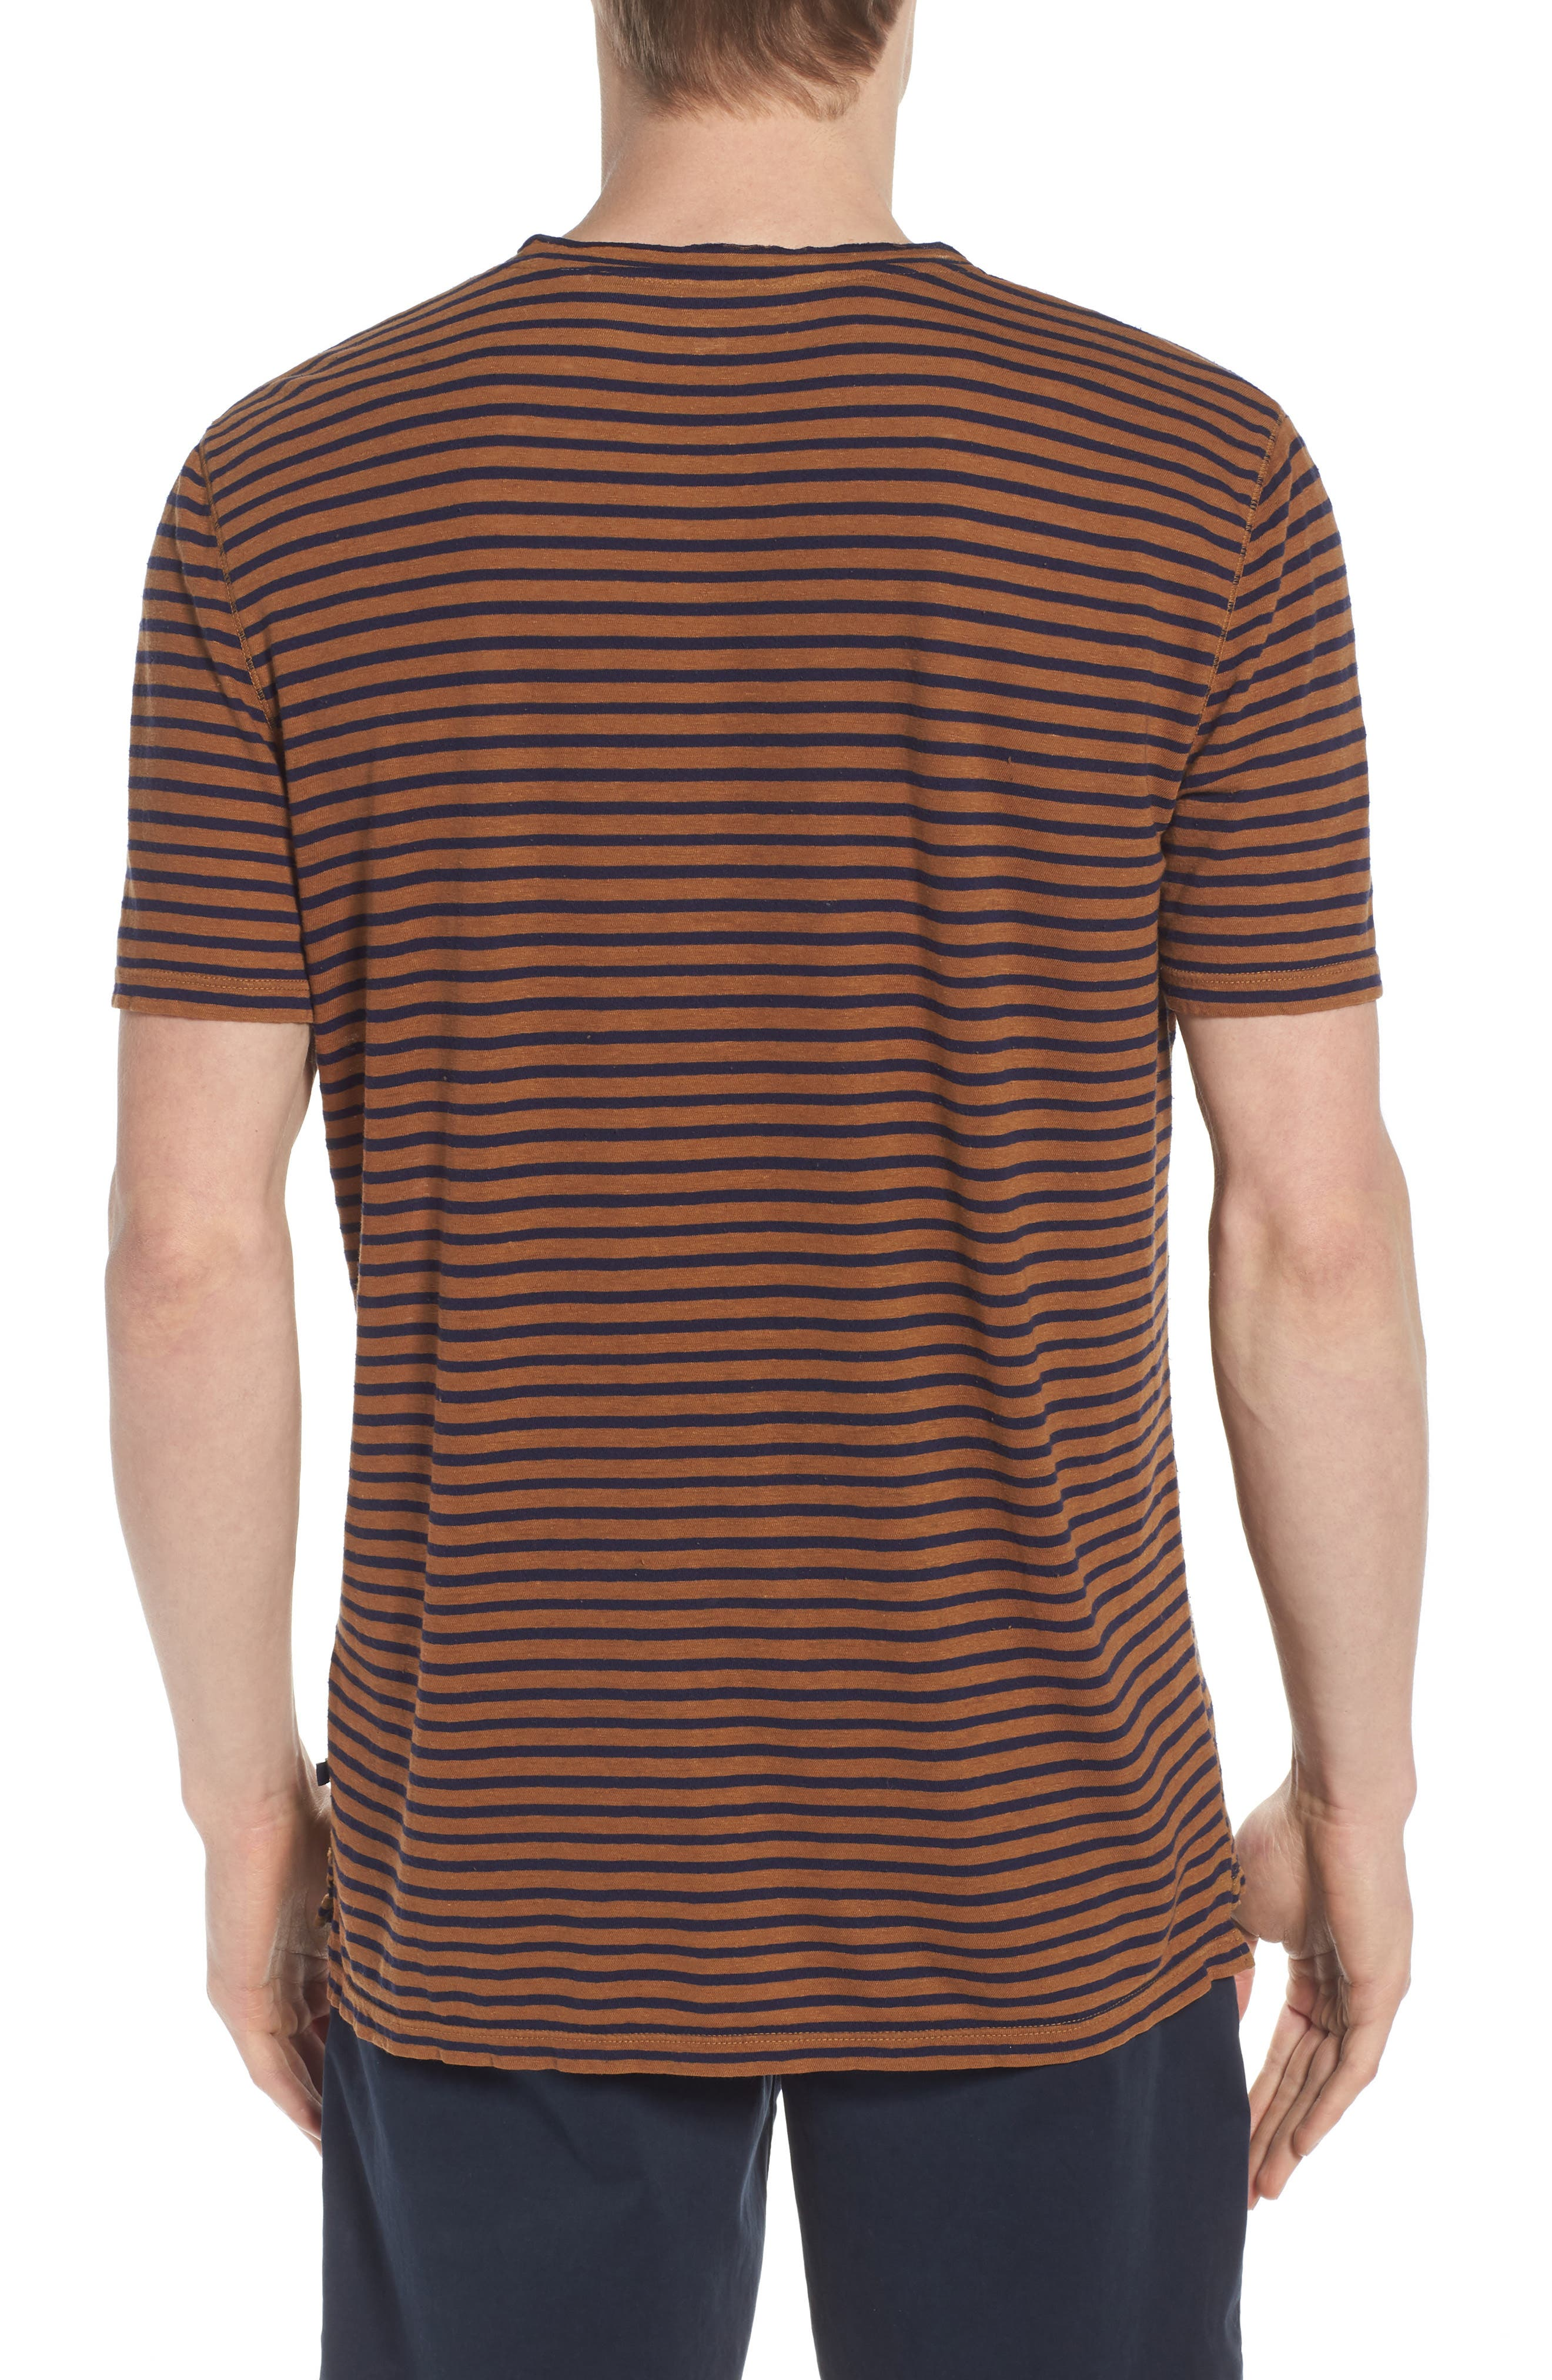 Theo Striped Cotton & Linen T-Shirt,                             Alternate thumbnail 2, color,                             BRONZE CLAY/ NAVY